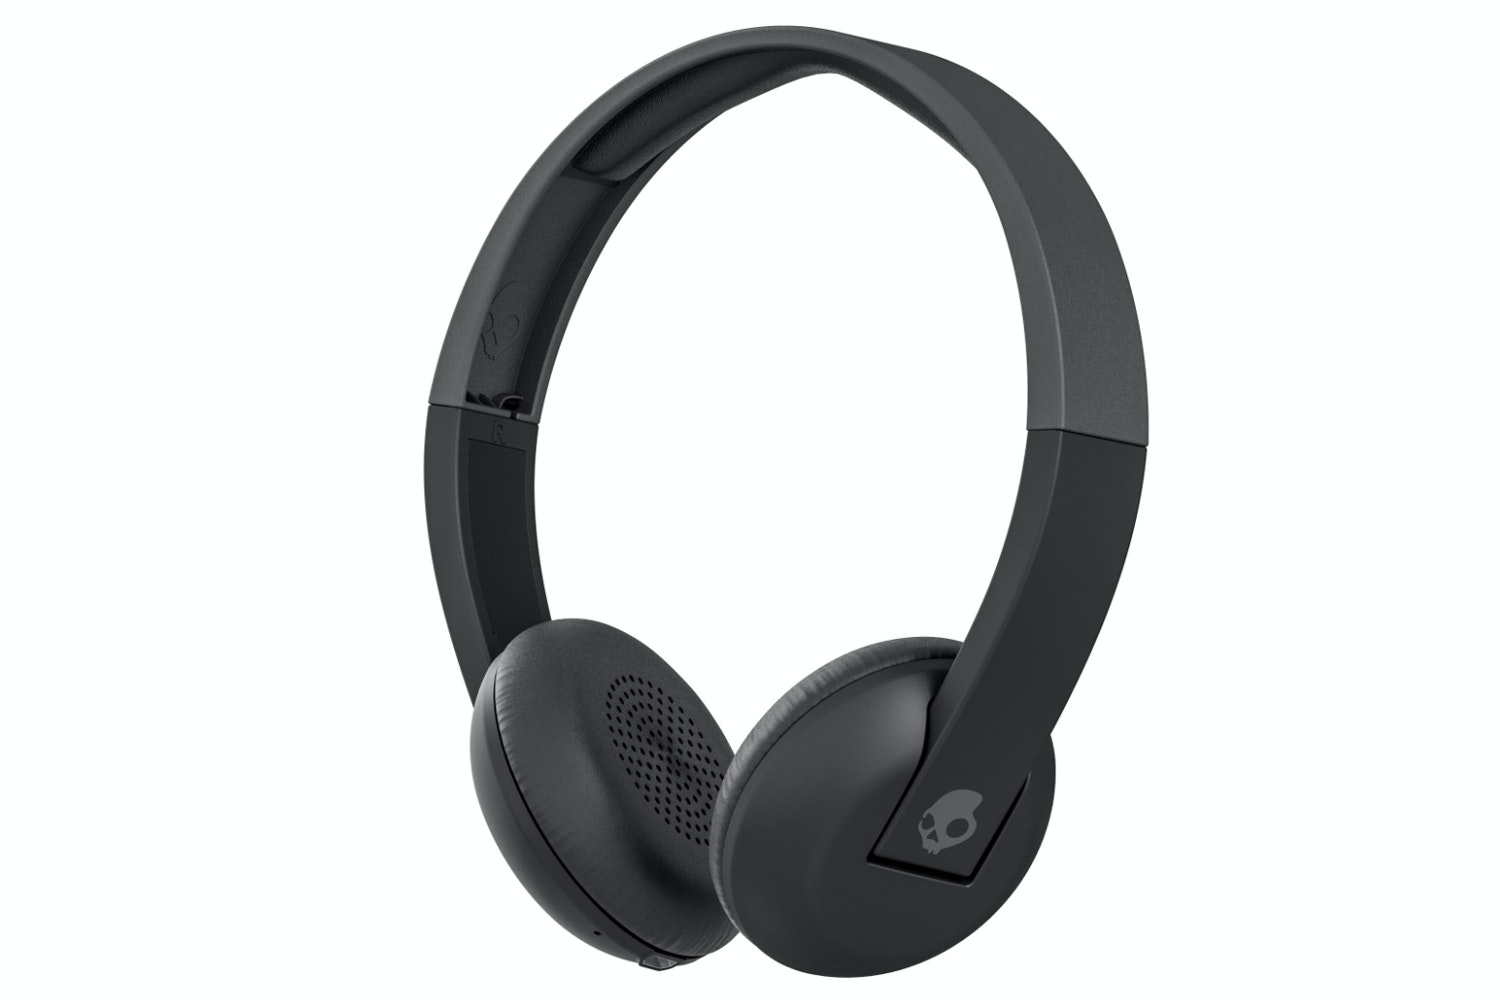 Skullcandy Uproar Black Wireless Headphones